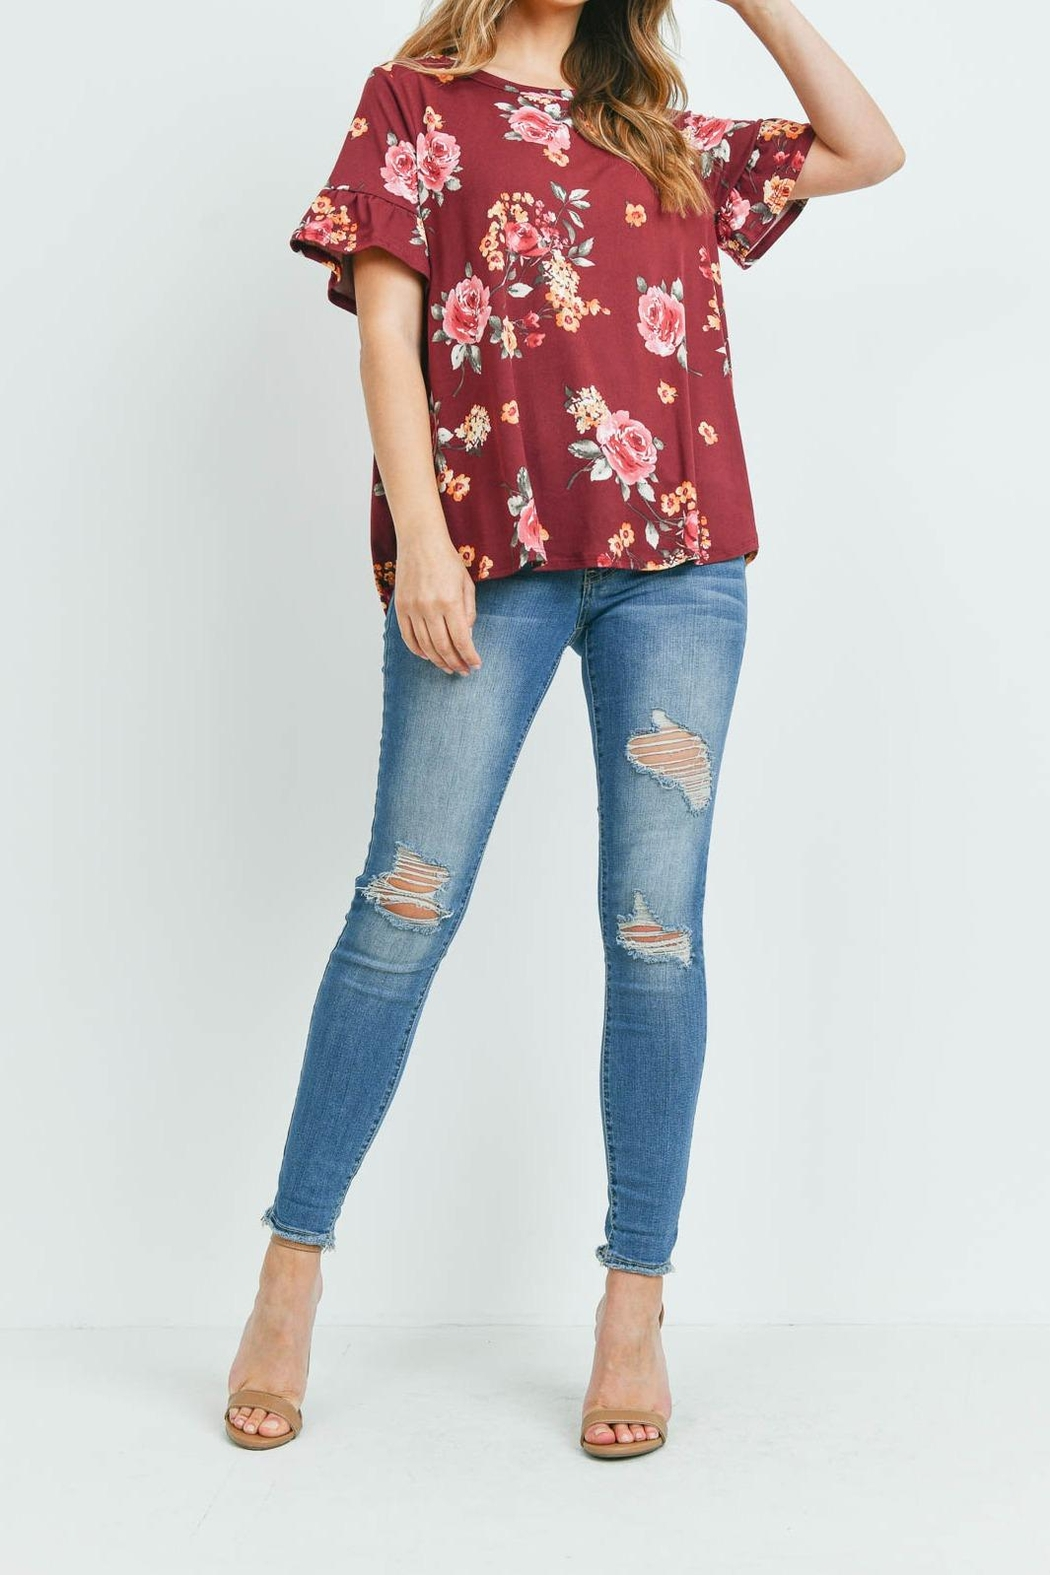 Riah Fashion Short-Sleeve-Floral-Print-Top - Side Cropped Image